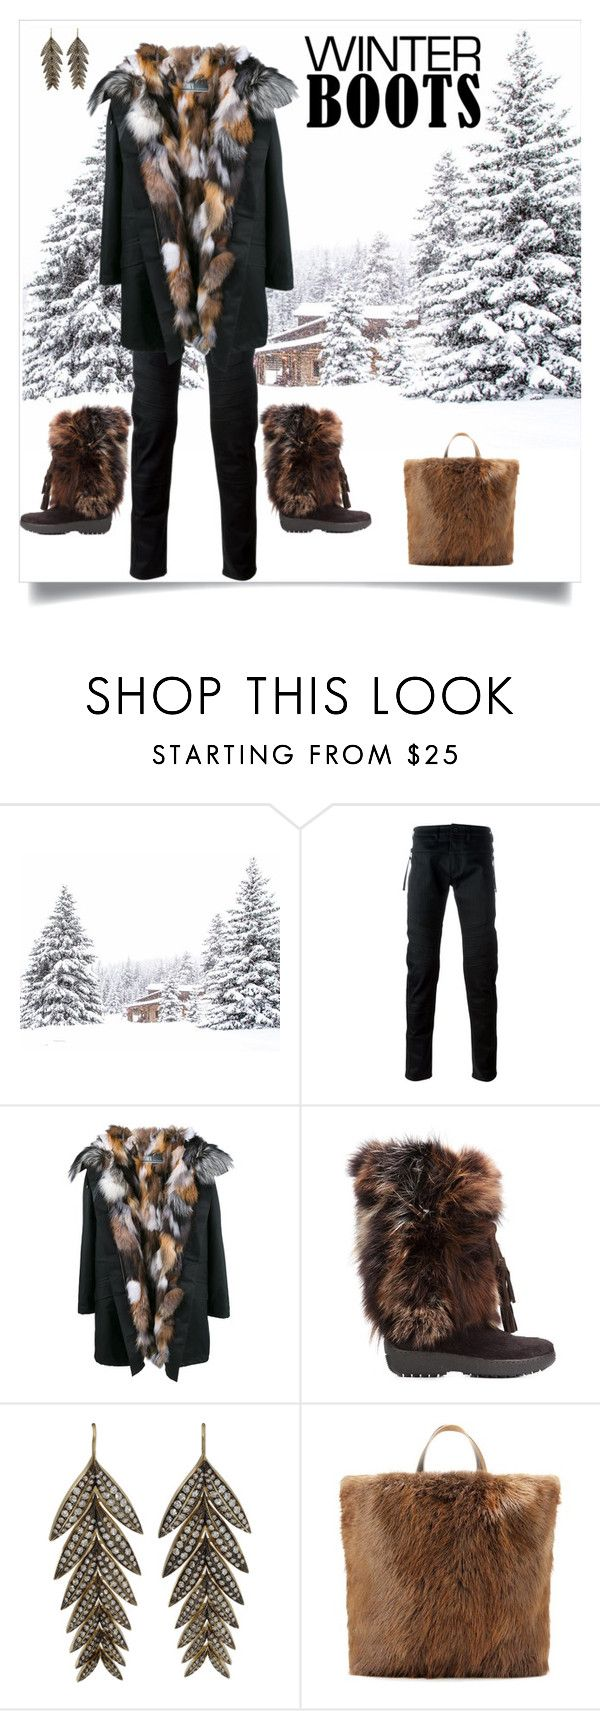 """""""Winter Boots"""" by shoecraycray ❤ liked on Polyvore featuring Diesel Black Gold, Yves Salomon, Pajar, Sylva & Cie and Marni"""